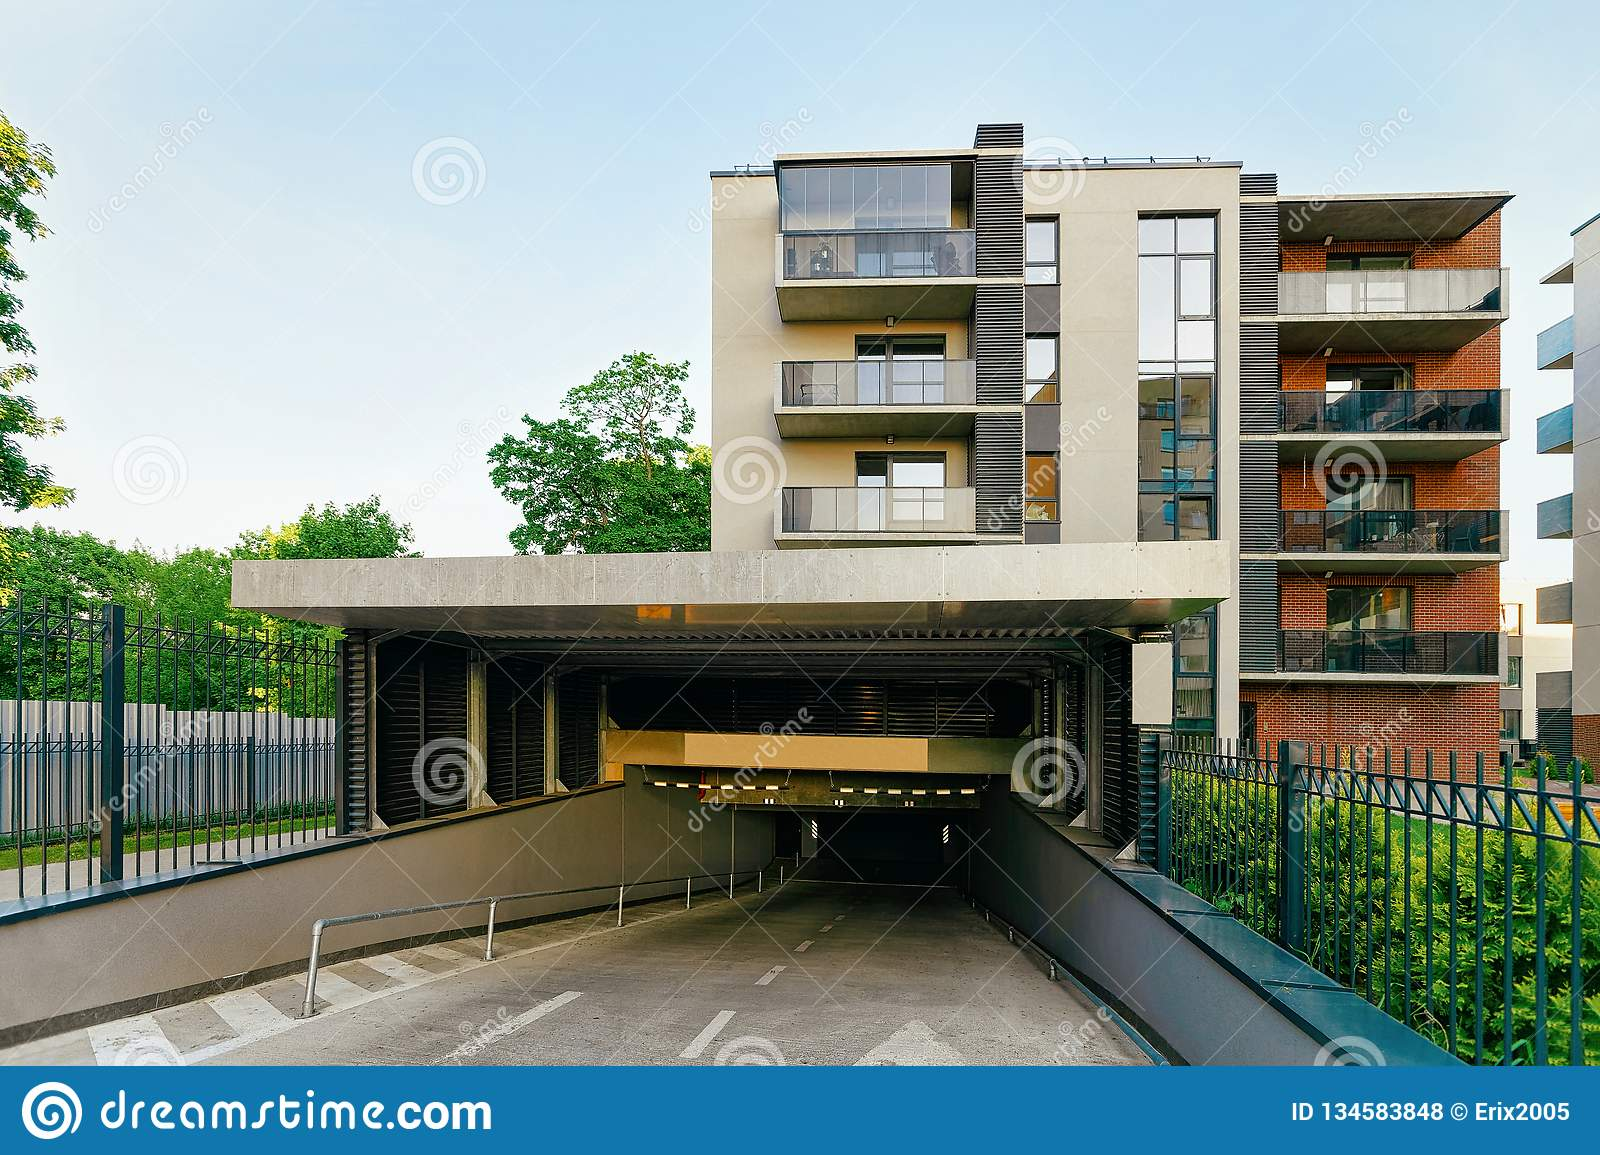 Modern Residential Apartment Building With Garage Stock ...